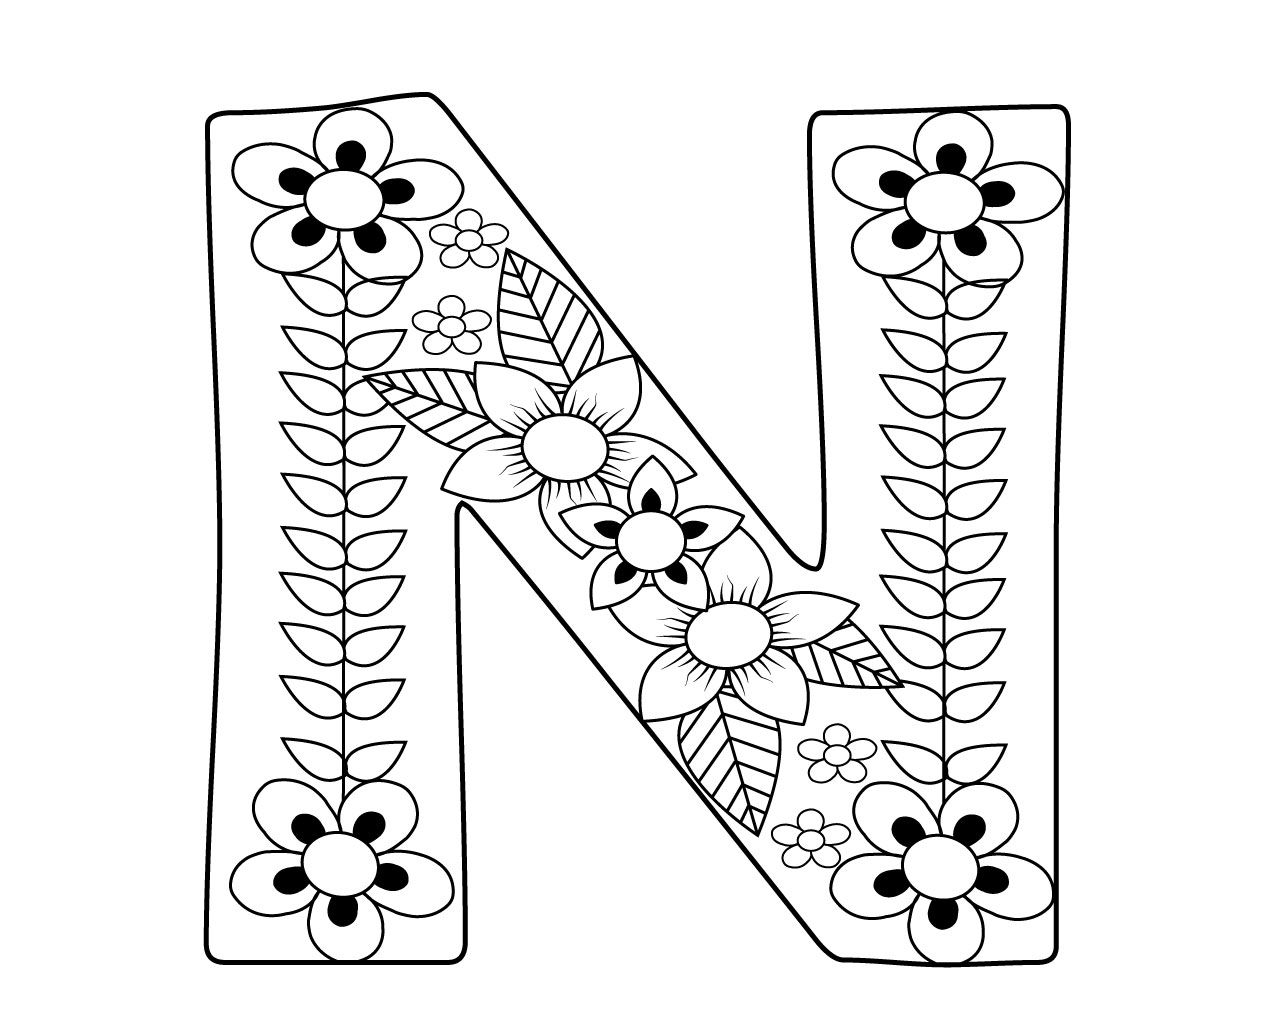 Letter N Coloring Pages For Adults